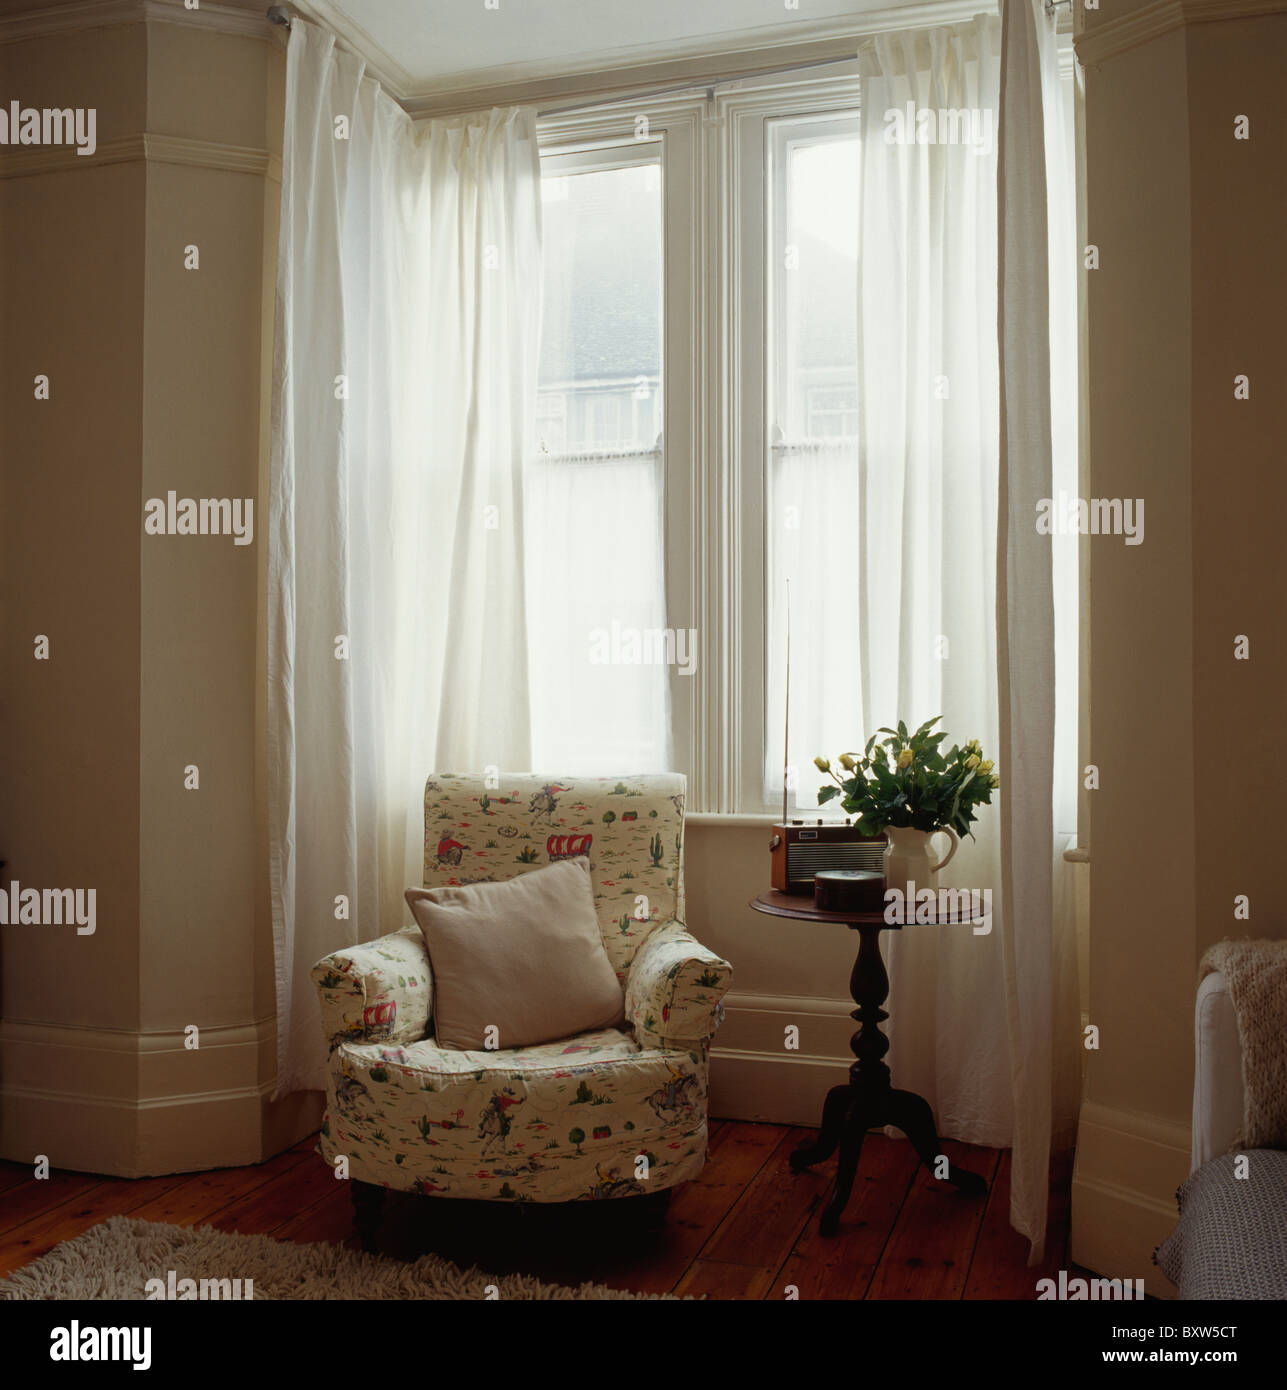 Patterned Cream Armchair In Front Of Bay Window With White Voile Curtains